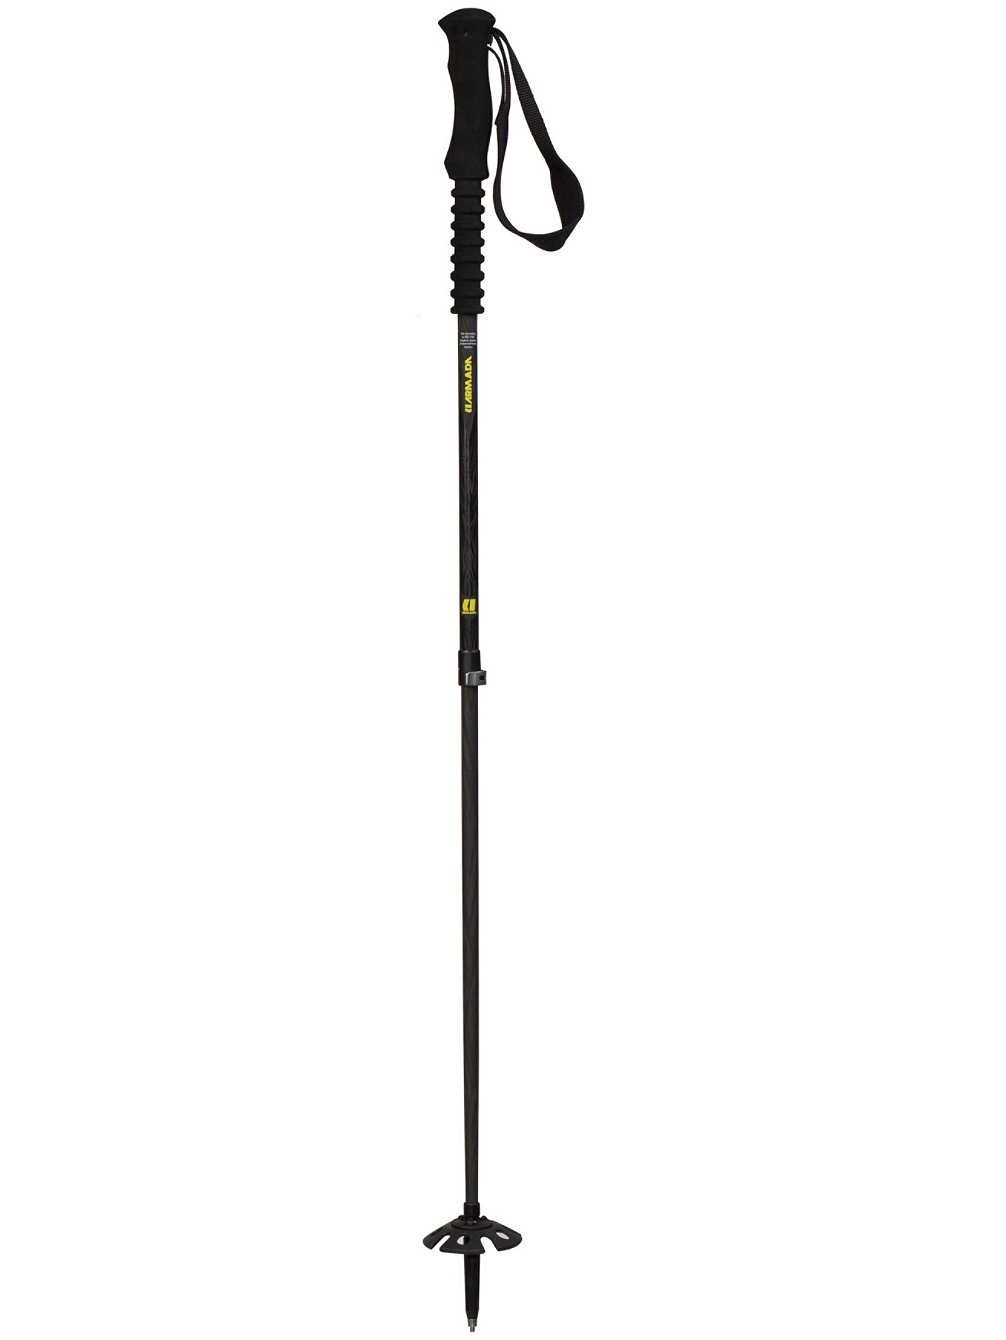 Armada Carbon T.L. Adjustable Ski Pole Black, 110 140cm